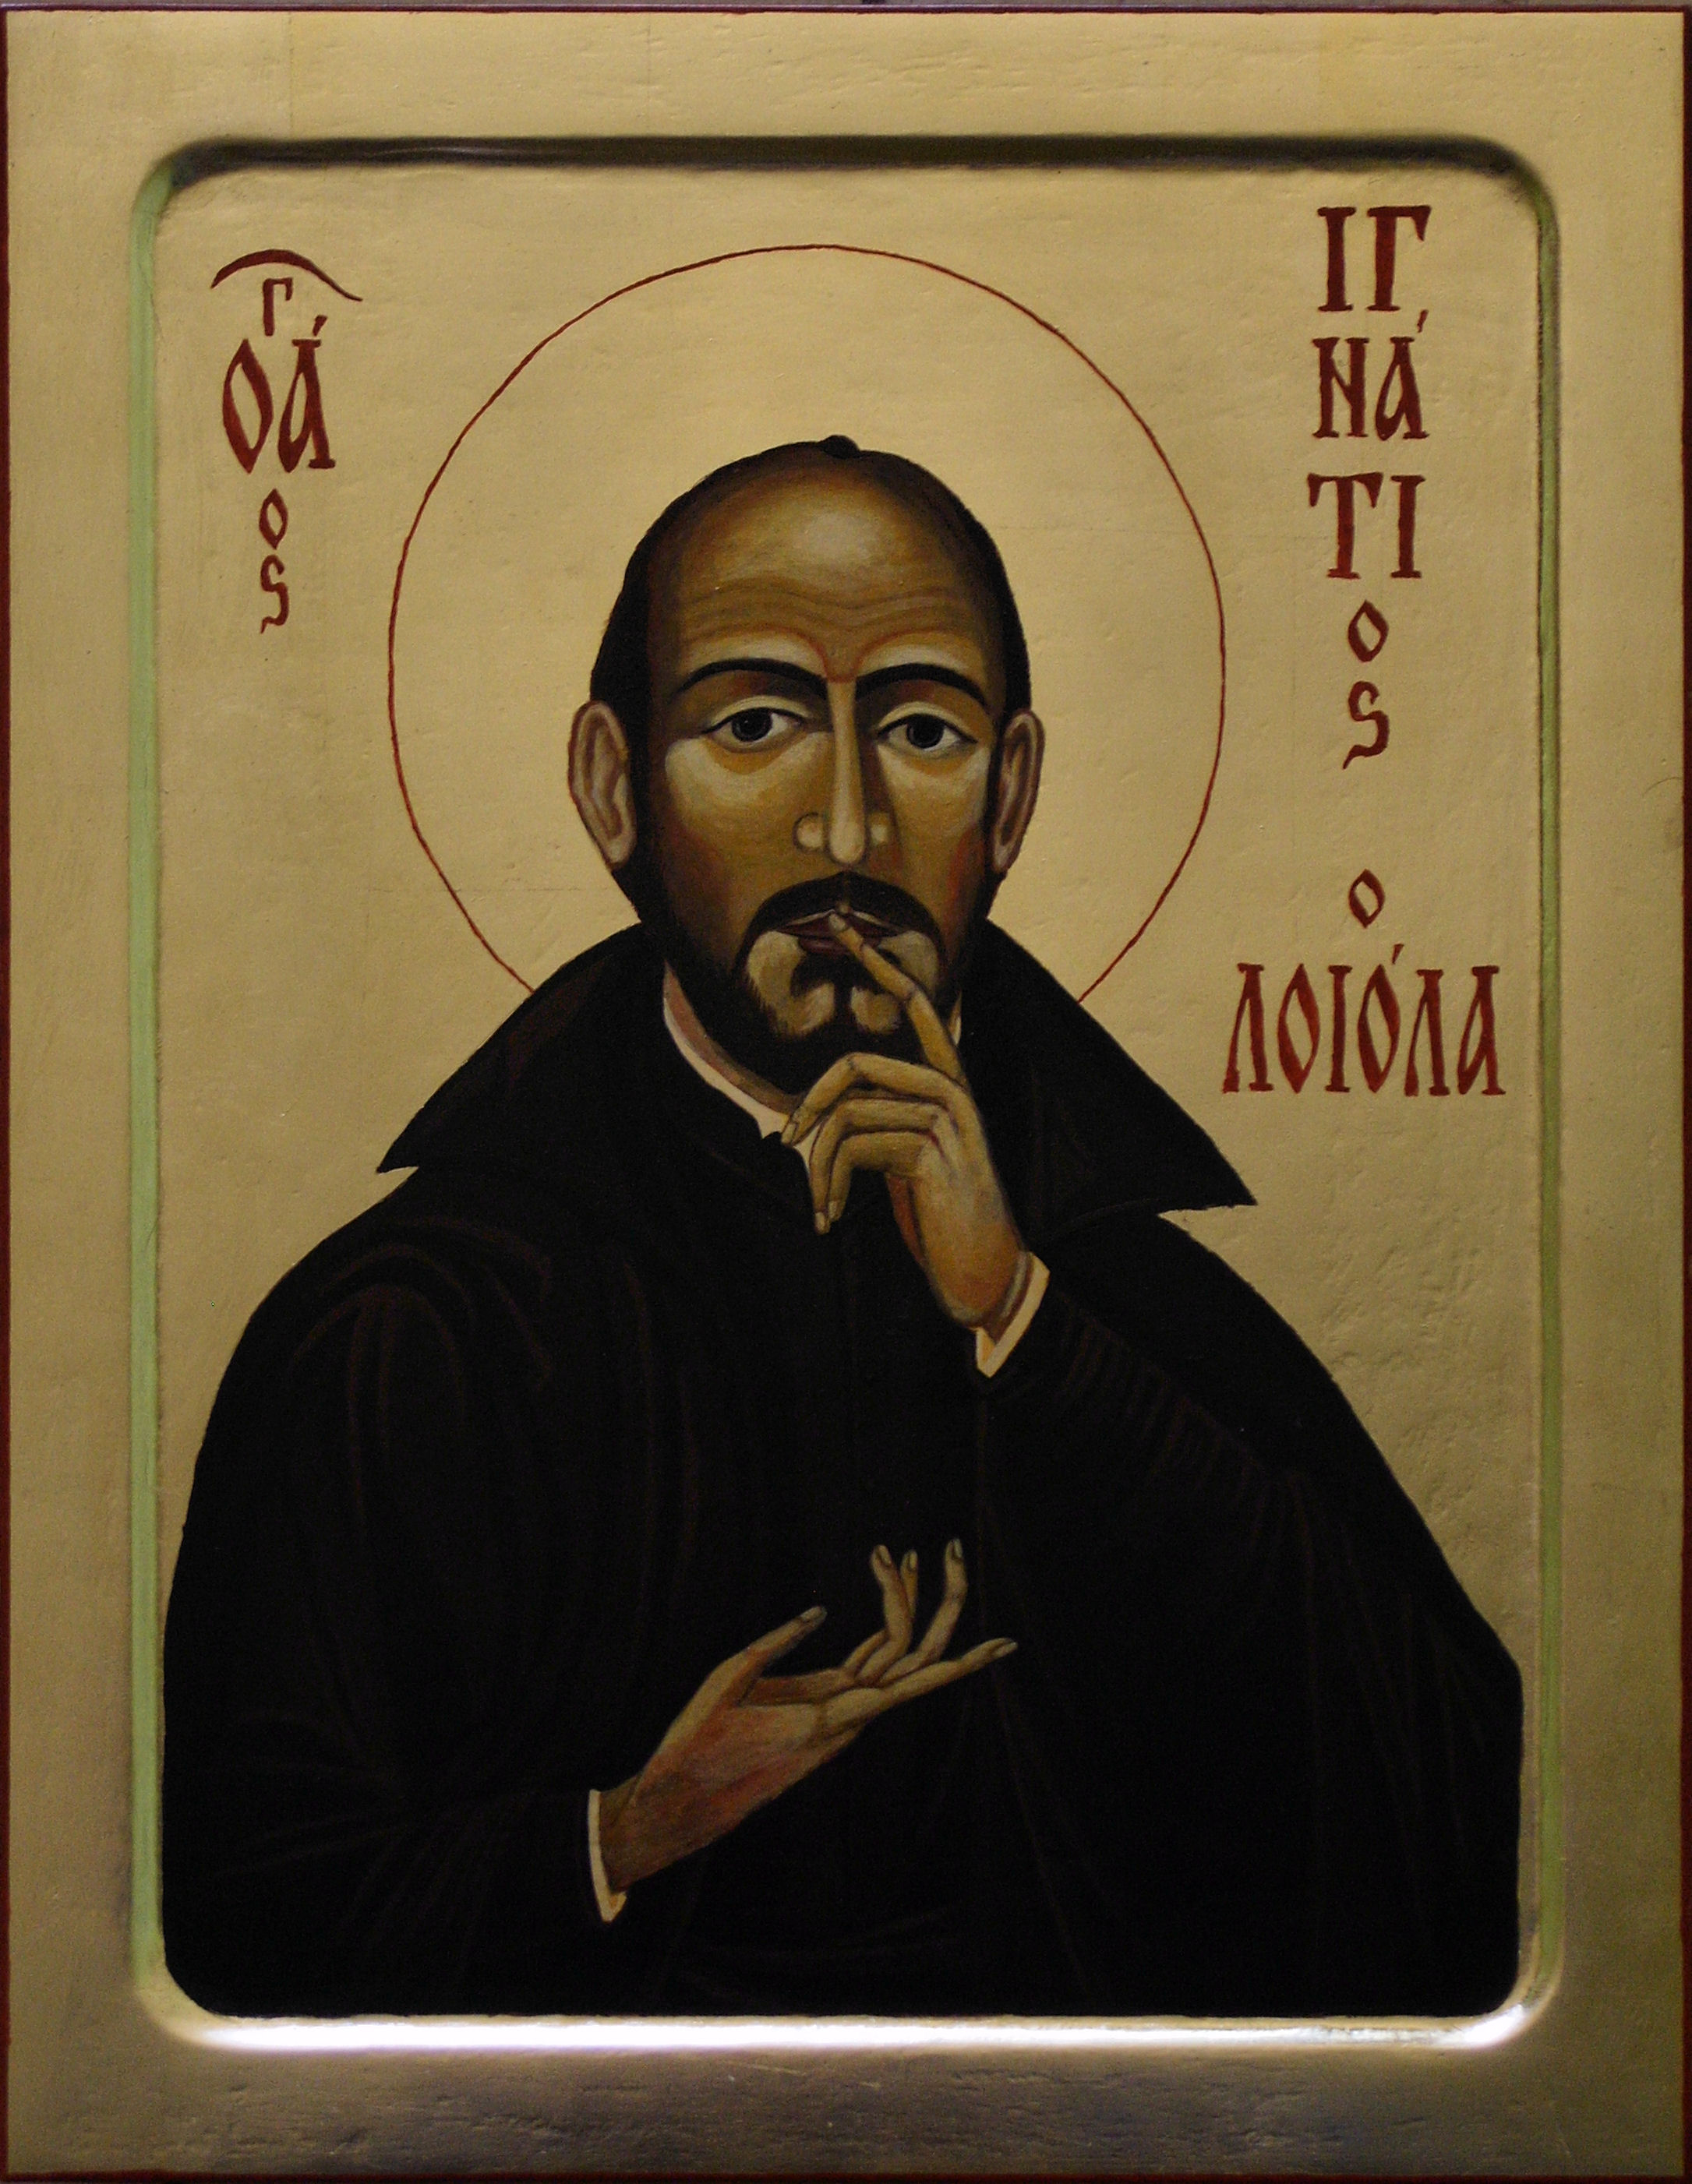 St Ignatius of Loyola, Icon made in Silesian School of Iconography - by 柯達理, 23 May 2009 (Loyola.jpg) (CC BY-SA 3.0 [https://creativecommons.org/licenses/by-sa/3.0/deed.en]), via Wikimedia Commons